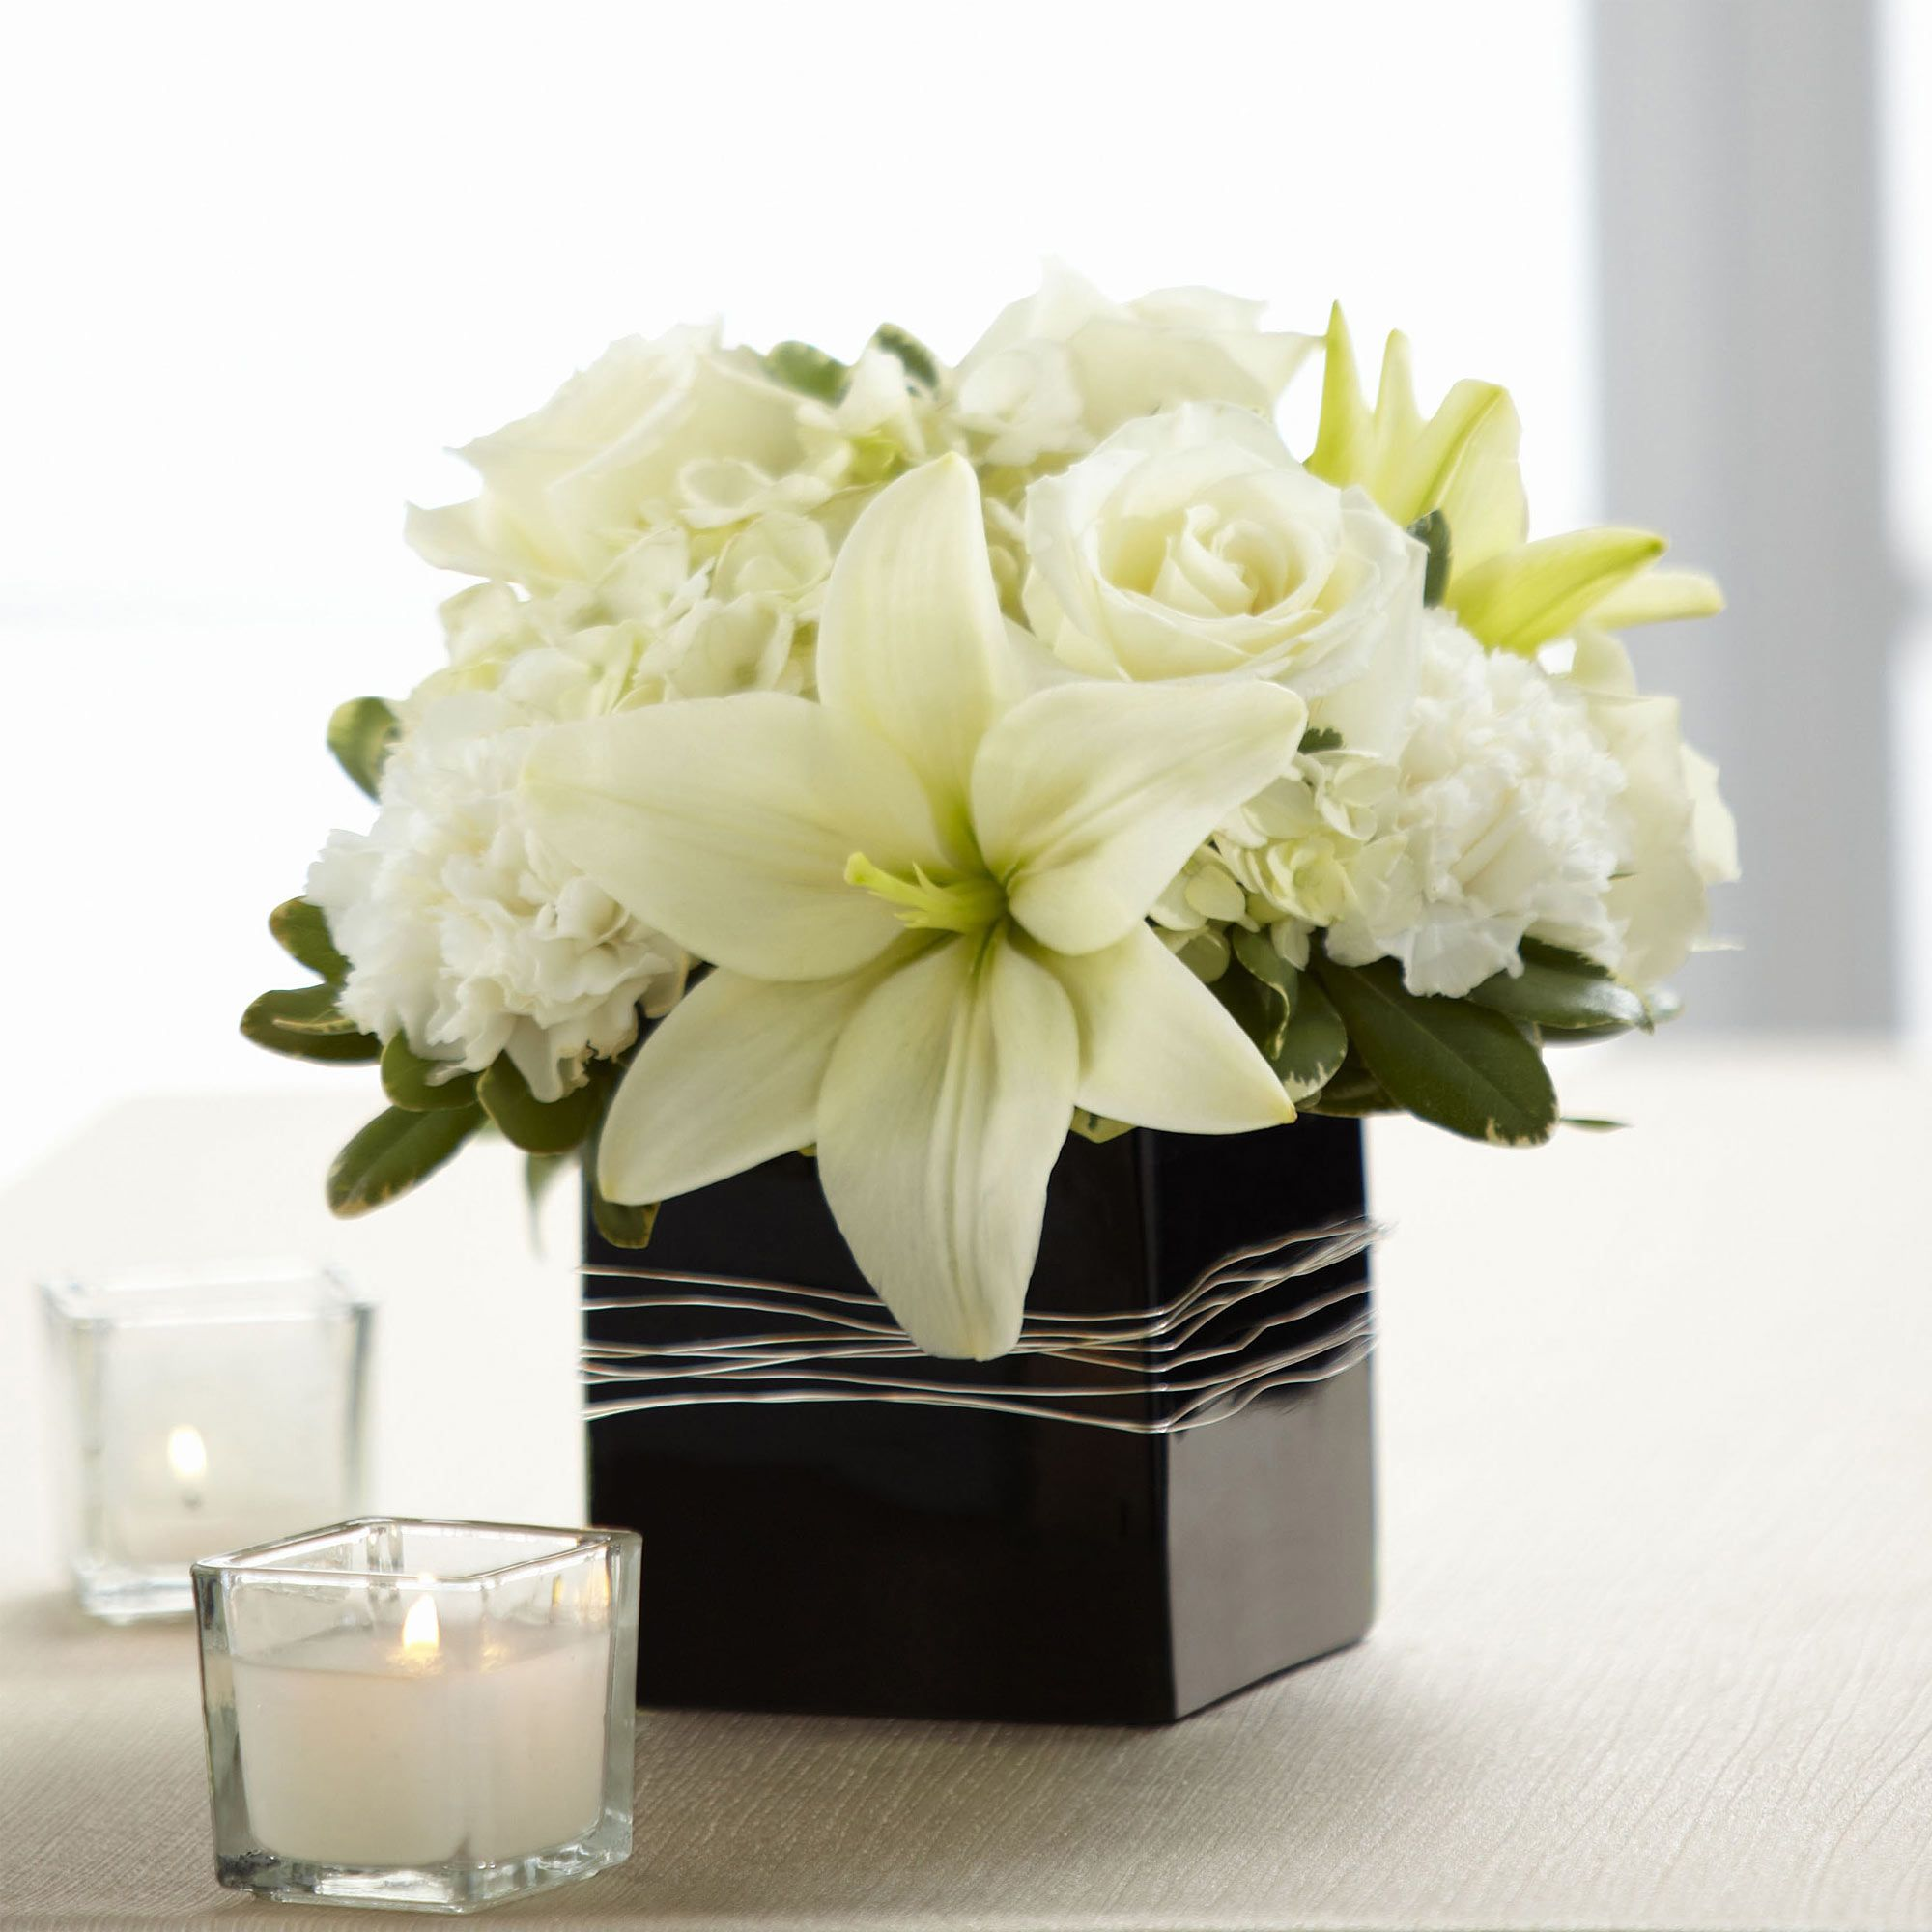 White Vase Centerpiece : Decorate your home with this lavish arrangement containing